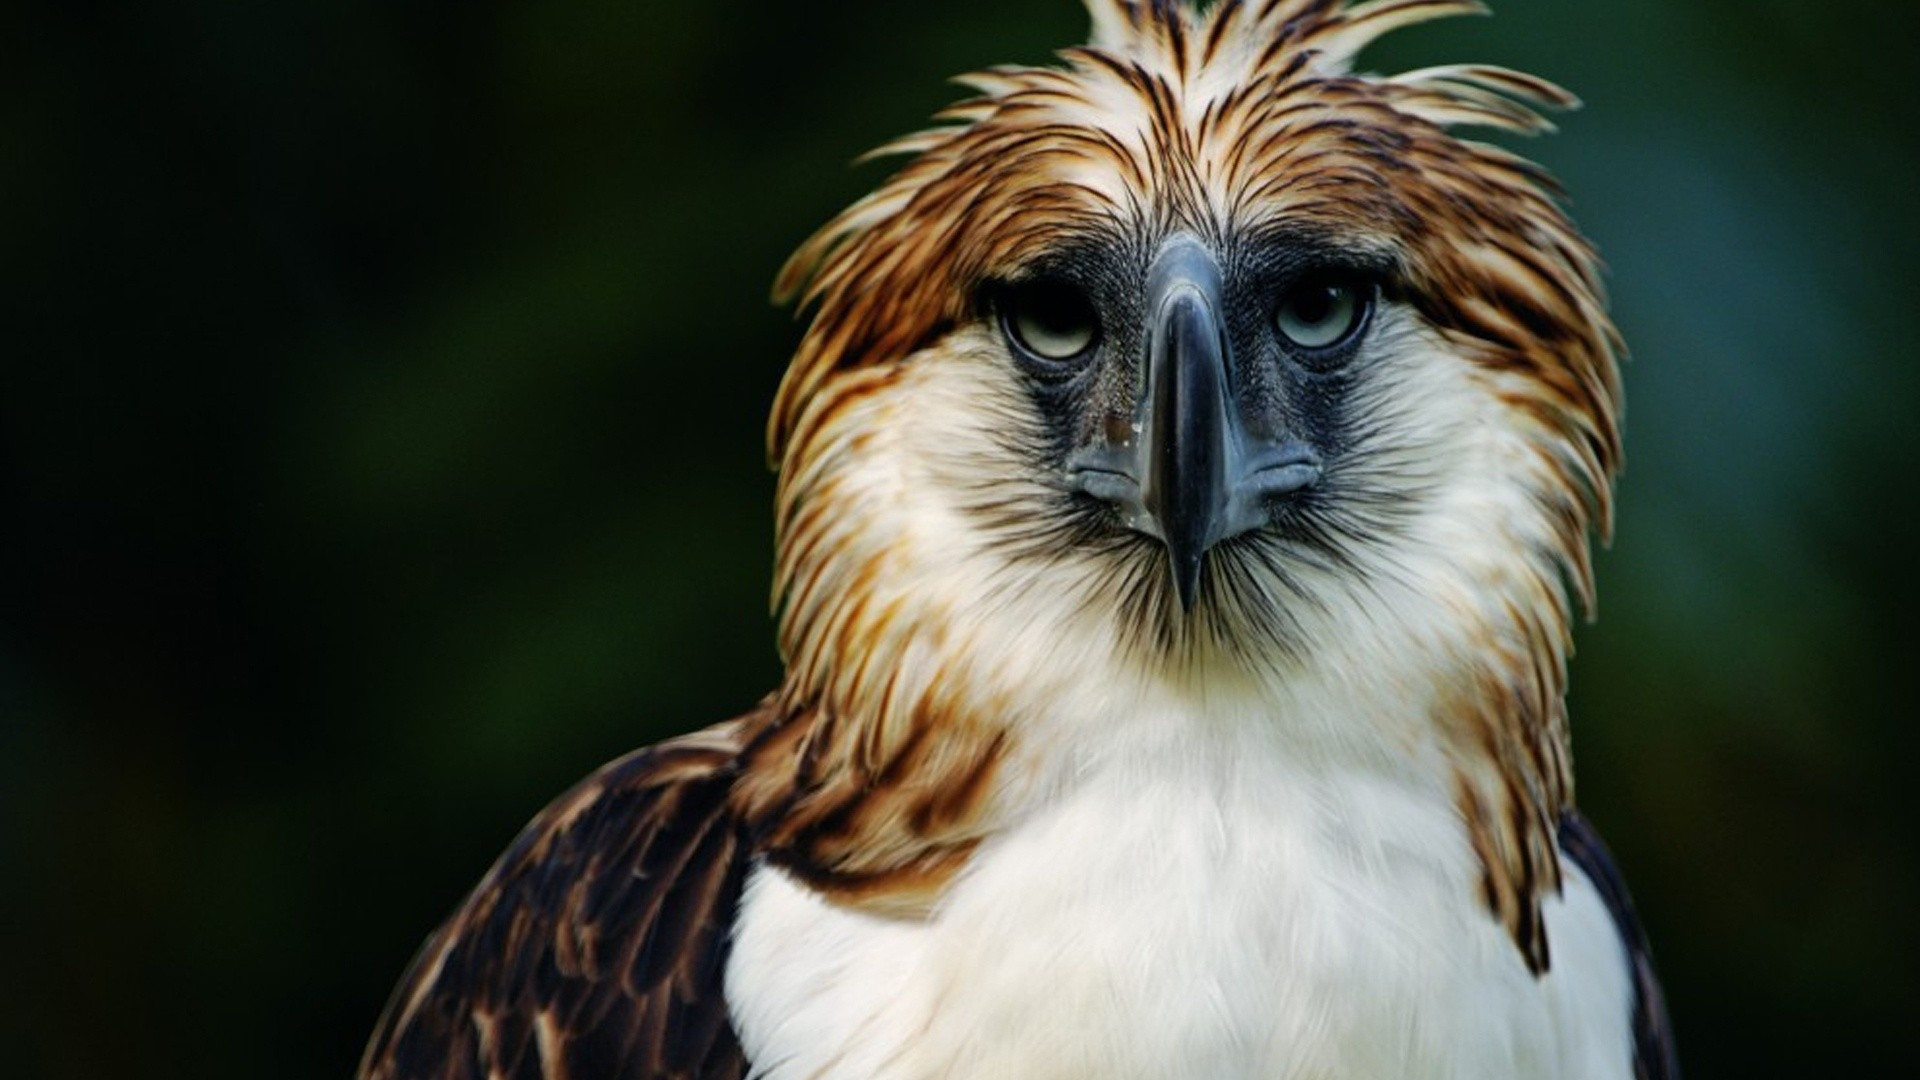 1920x1080 Preview wallpaper eagle, philippines, bird, head, feathers, beak, carnivore